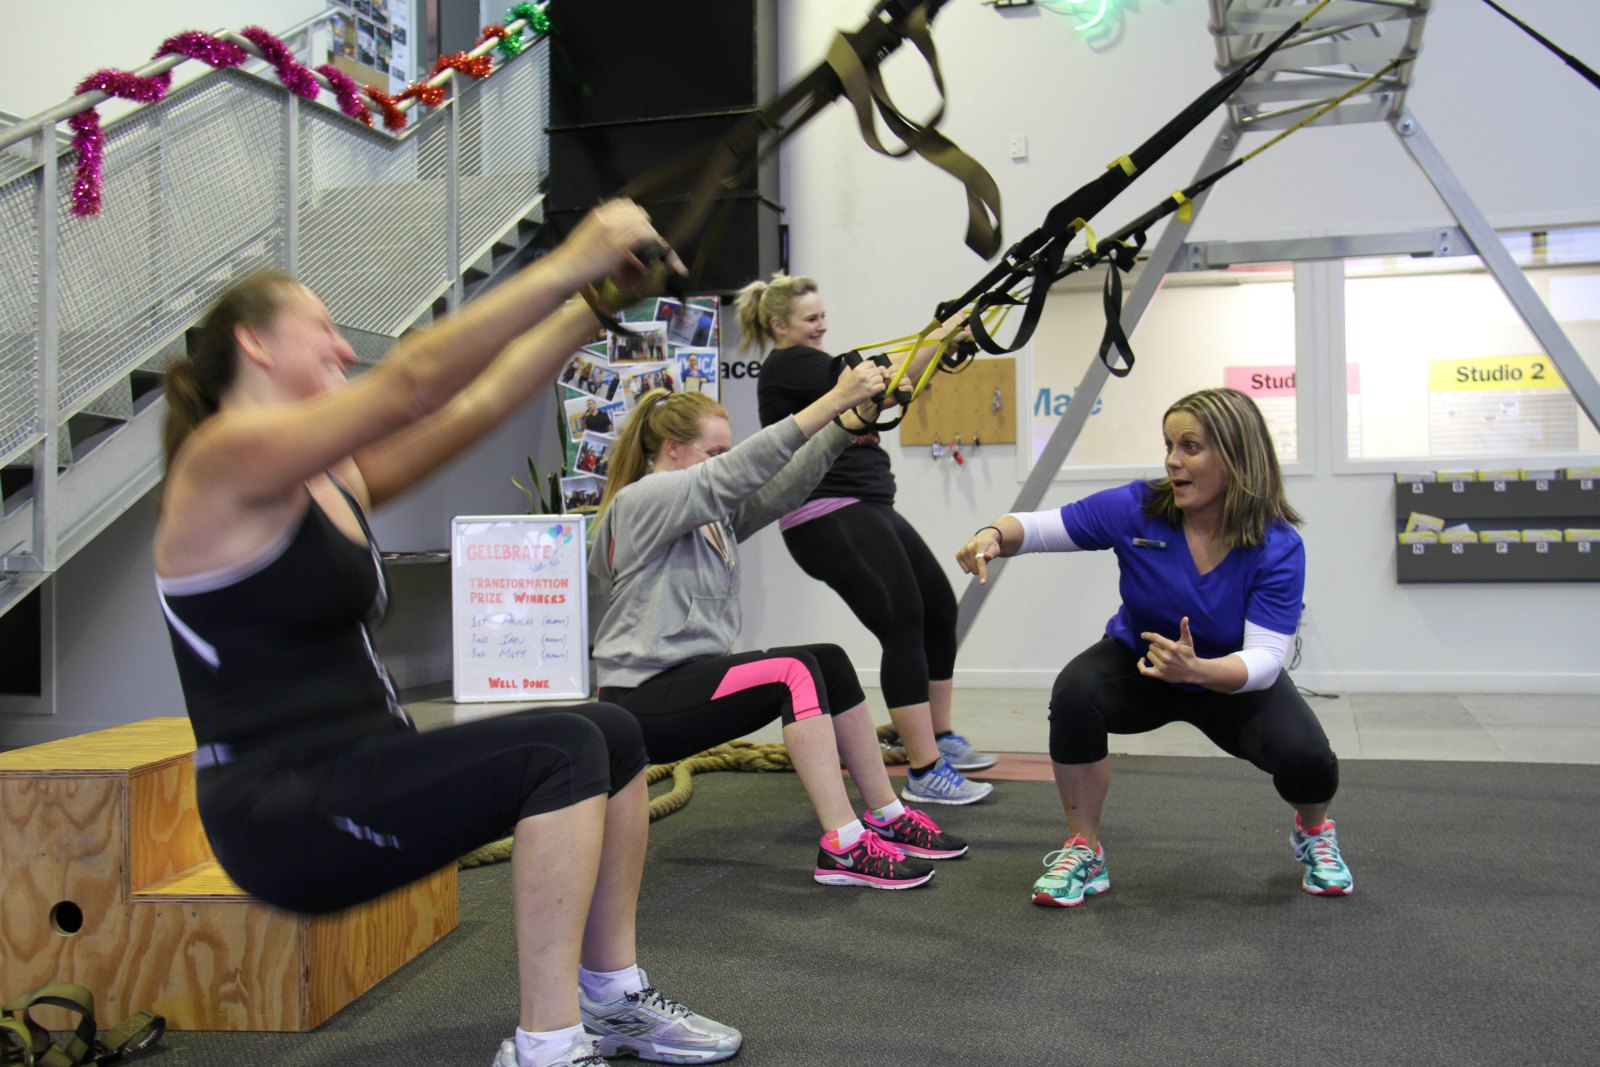 club physical move it programme